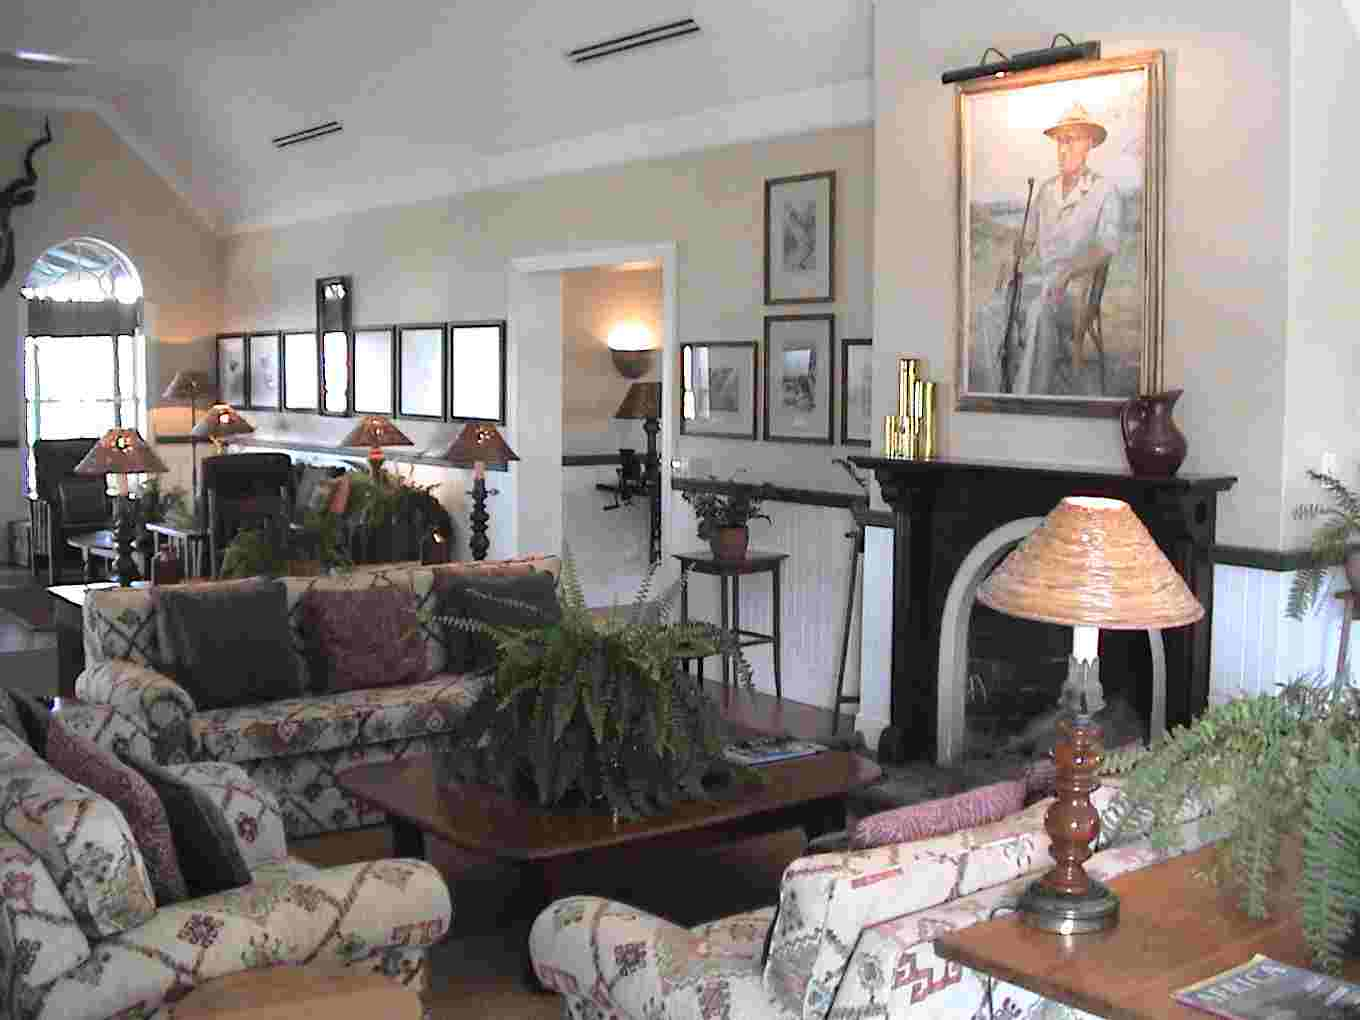 The lounge area and a painting of Harry Kirkman, who was the first director of Kruger National Park.